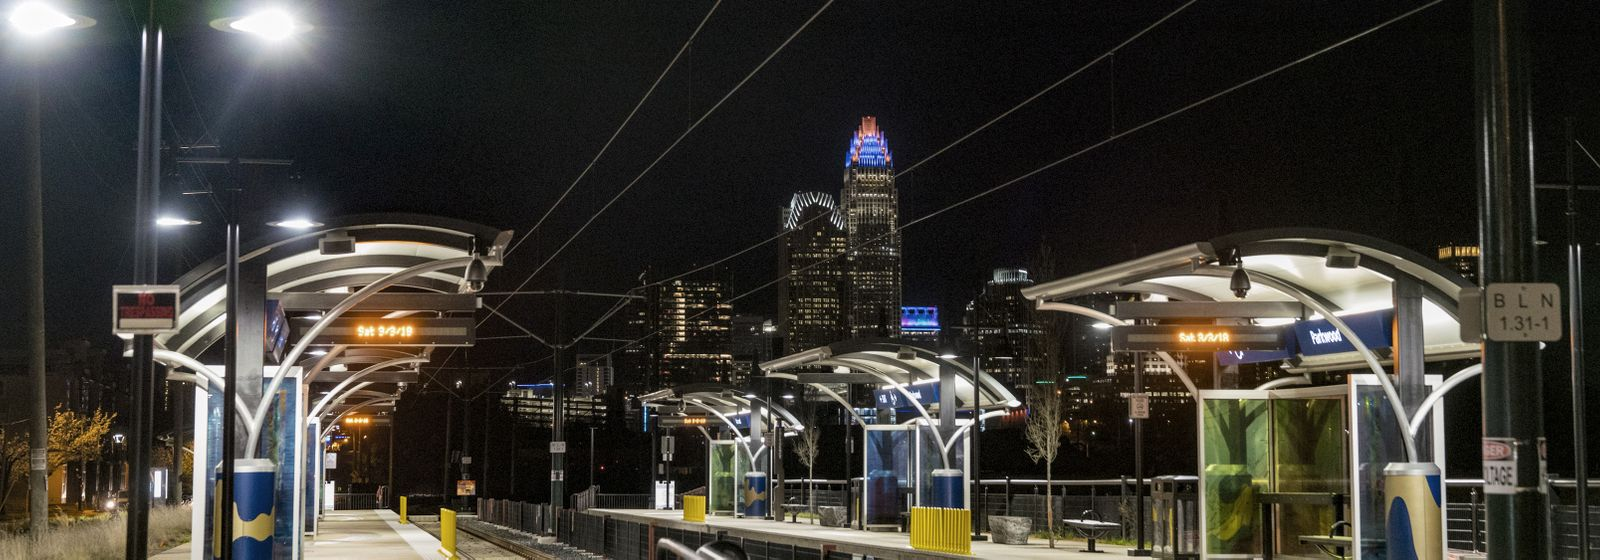 Duke Energy powers new light rail line in Charlotte